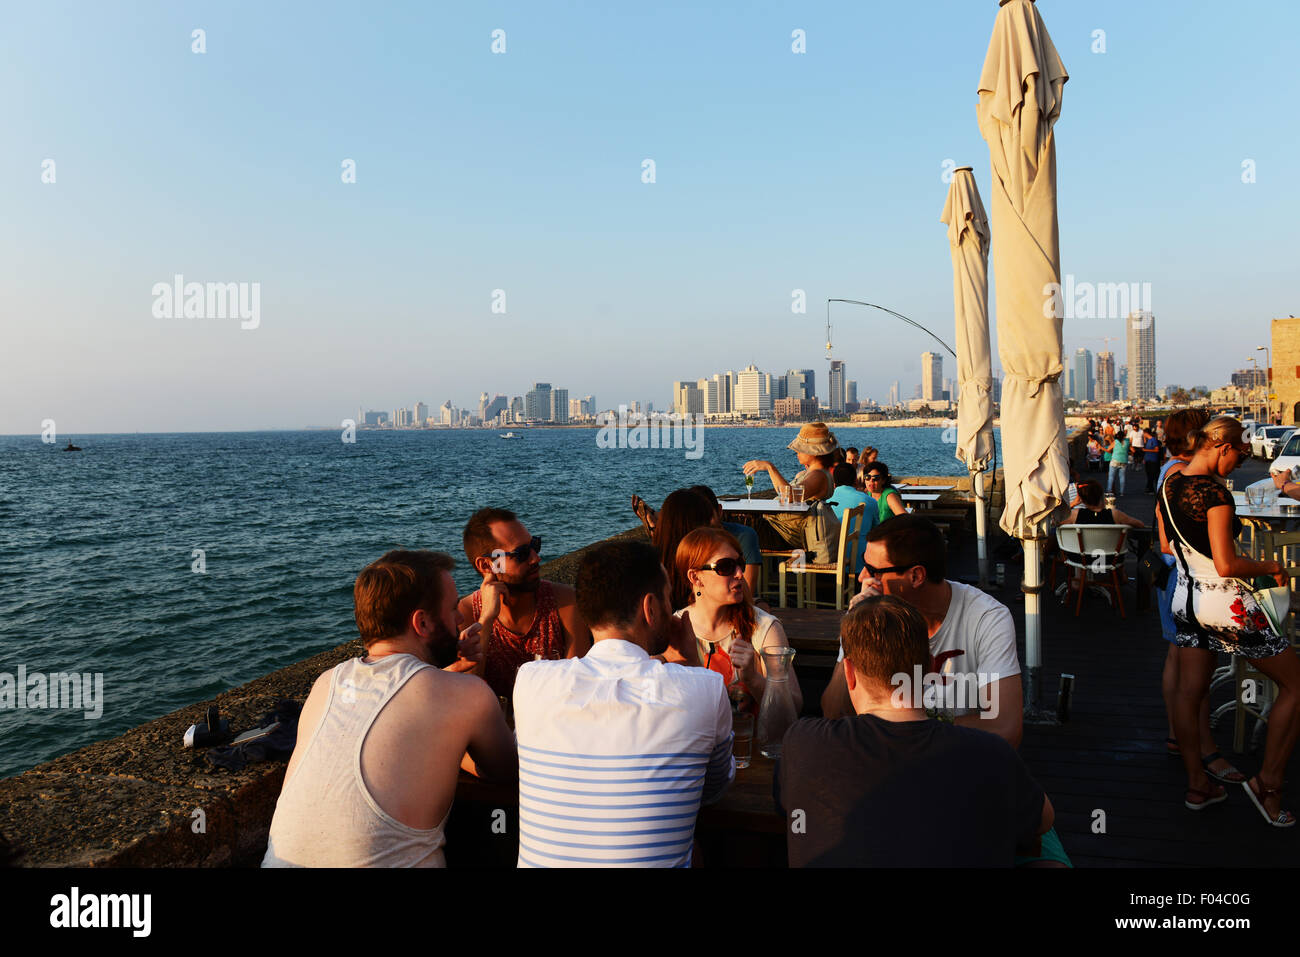 Friends drinking and Enjoying the views of Tel Aviv and the Mediterranean sea. - Stock Image